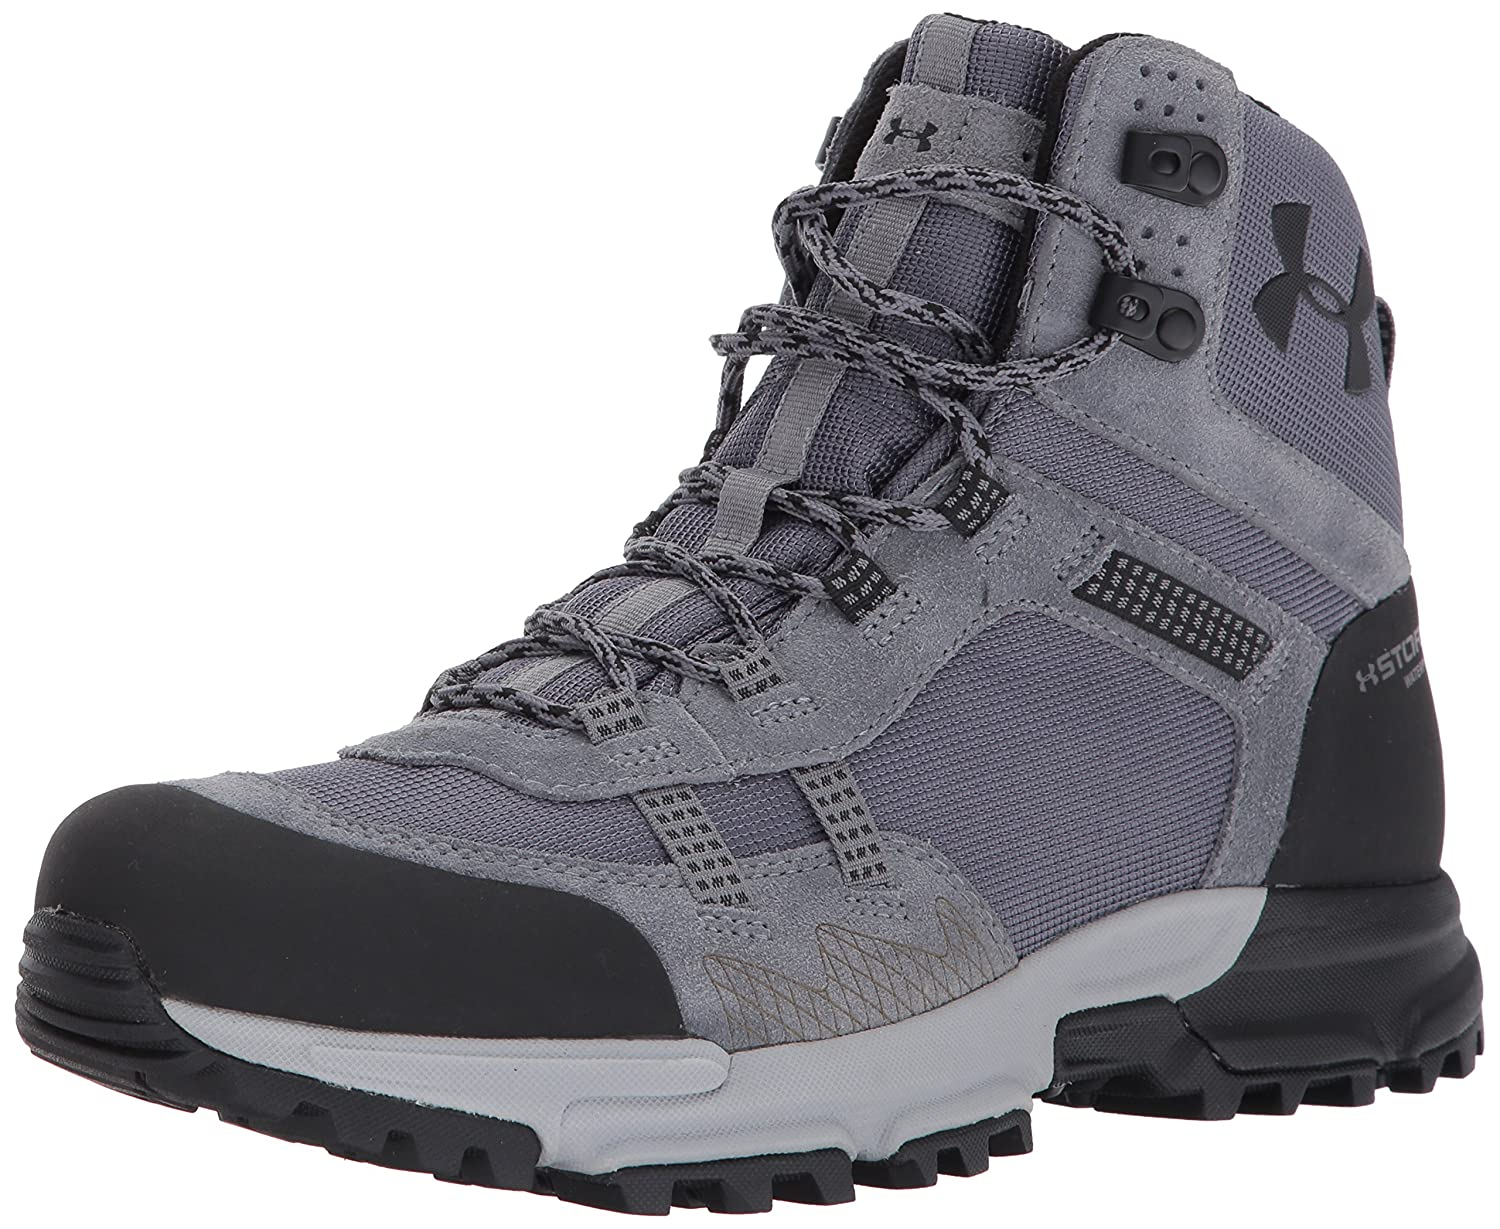 add95abeb2c Under Armour Men's Post Canyon Mid Waterproof Hiking Boots, Graphite ...